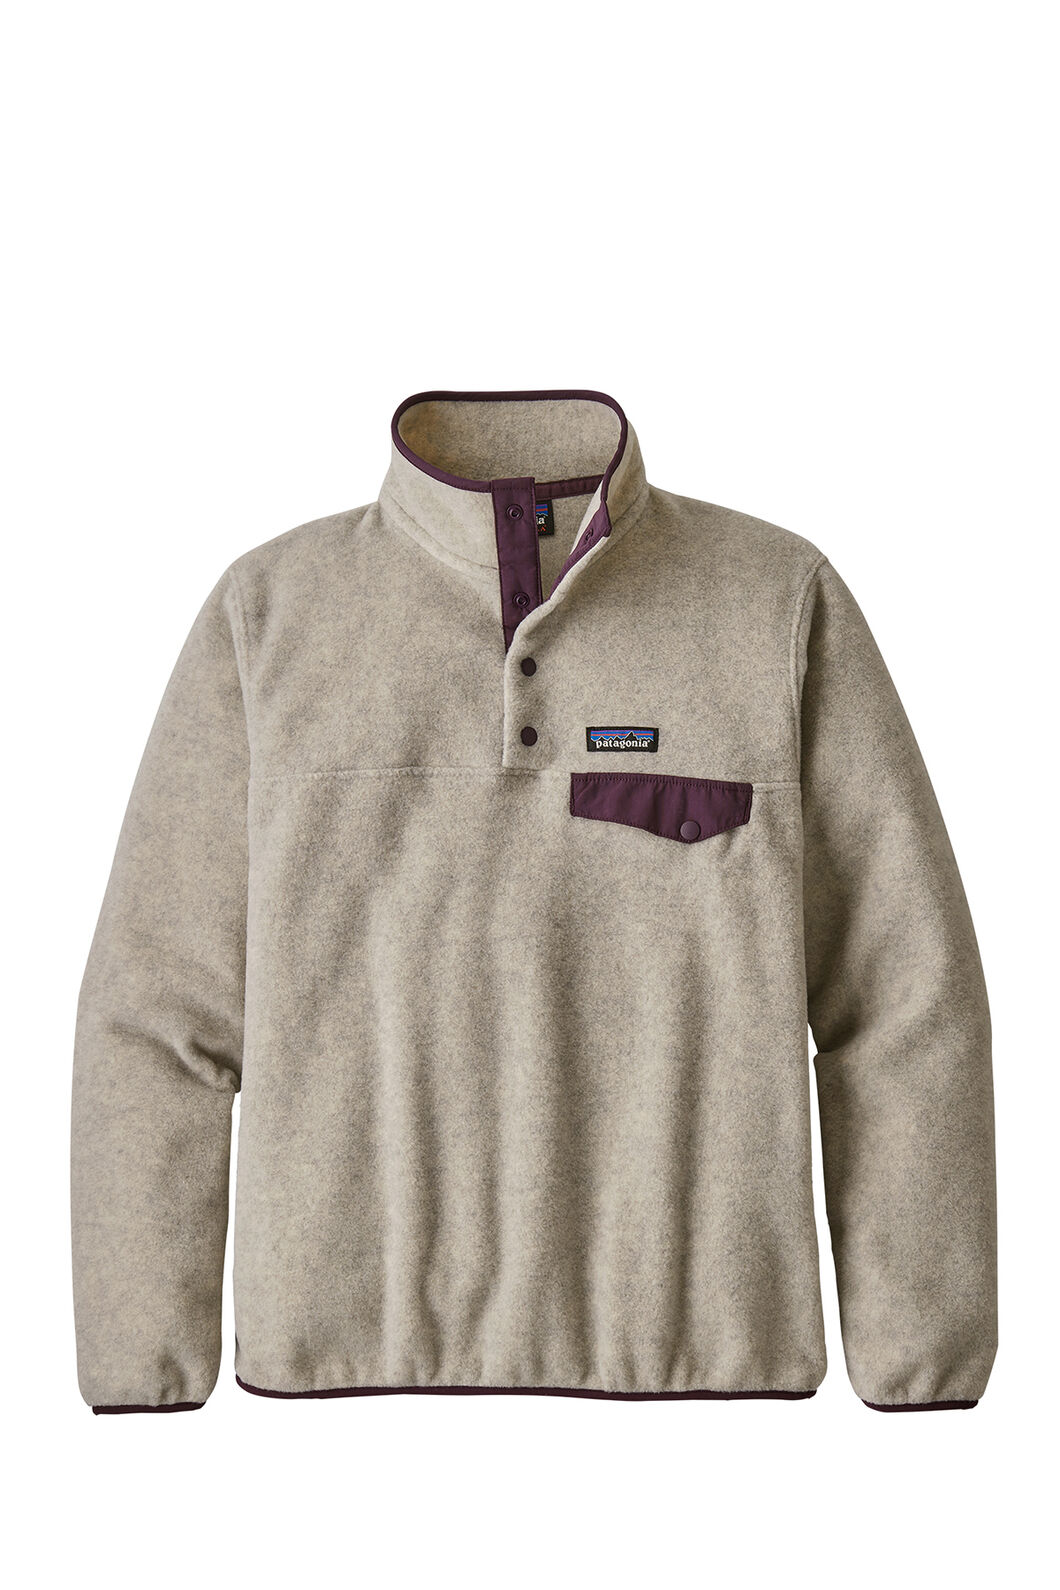 Patagonia LW Synchilla Snap T Pullover — Women's, Oatmeal Heather, hi-res